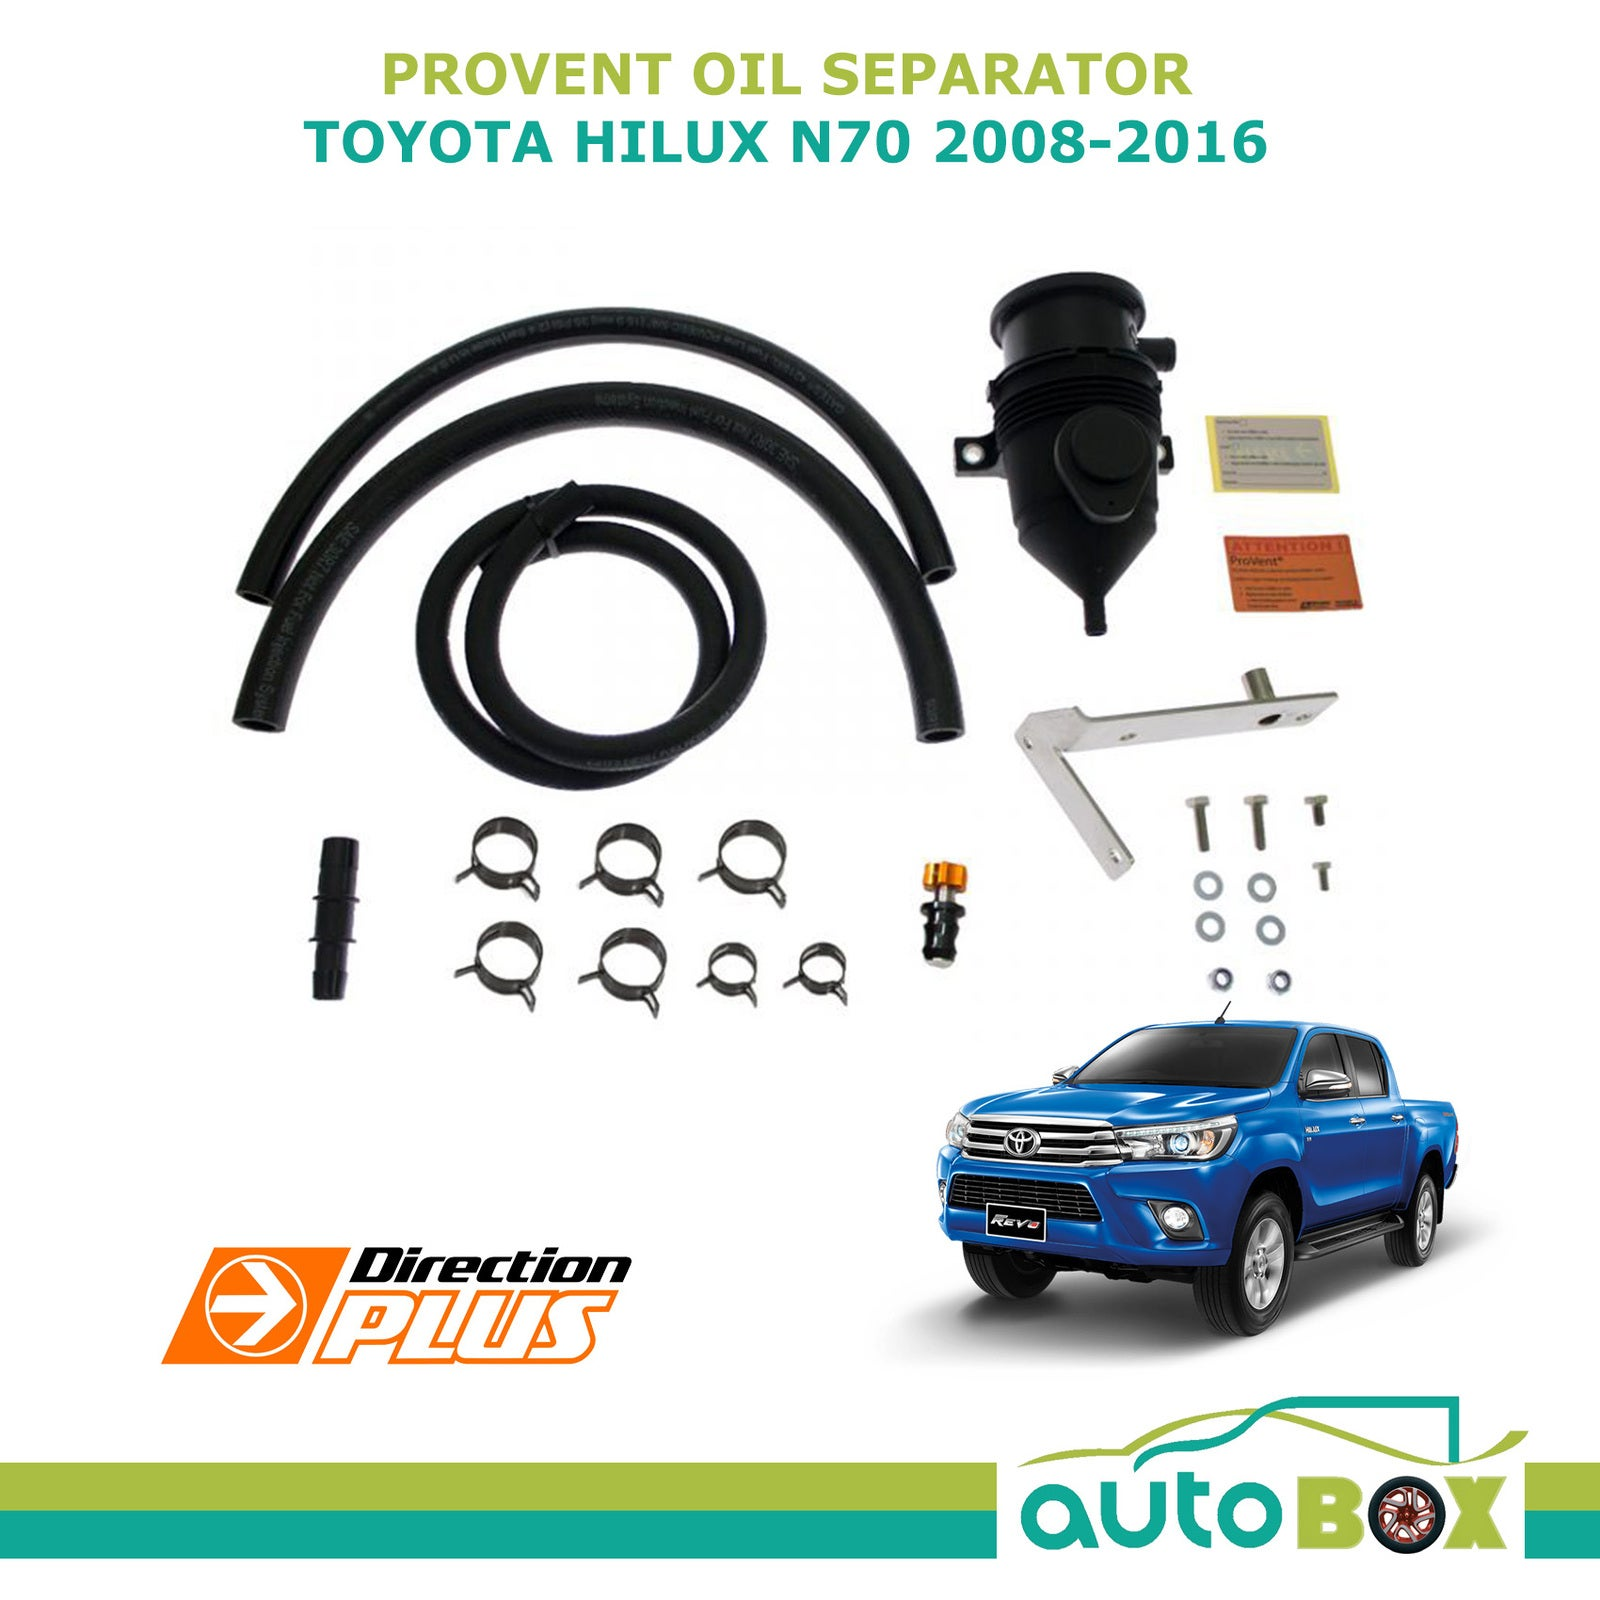 ProVent Oil Separator Catch Can for Toyota Hilux Diesel 3.0 N70 1KD-FTV 2008-16